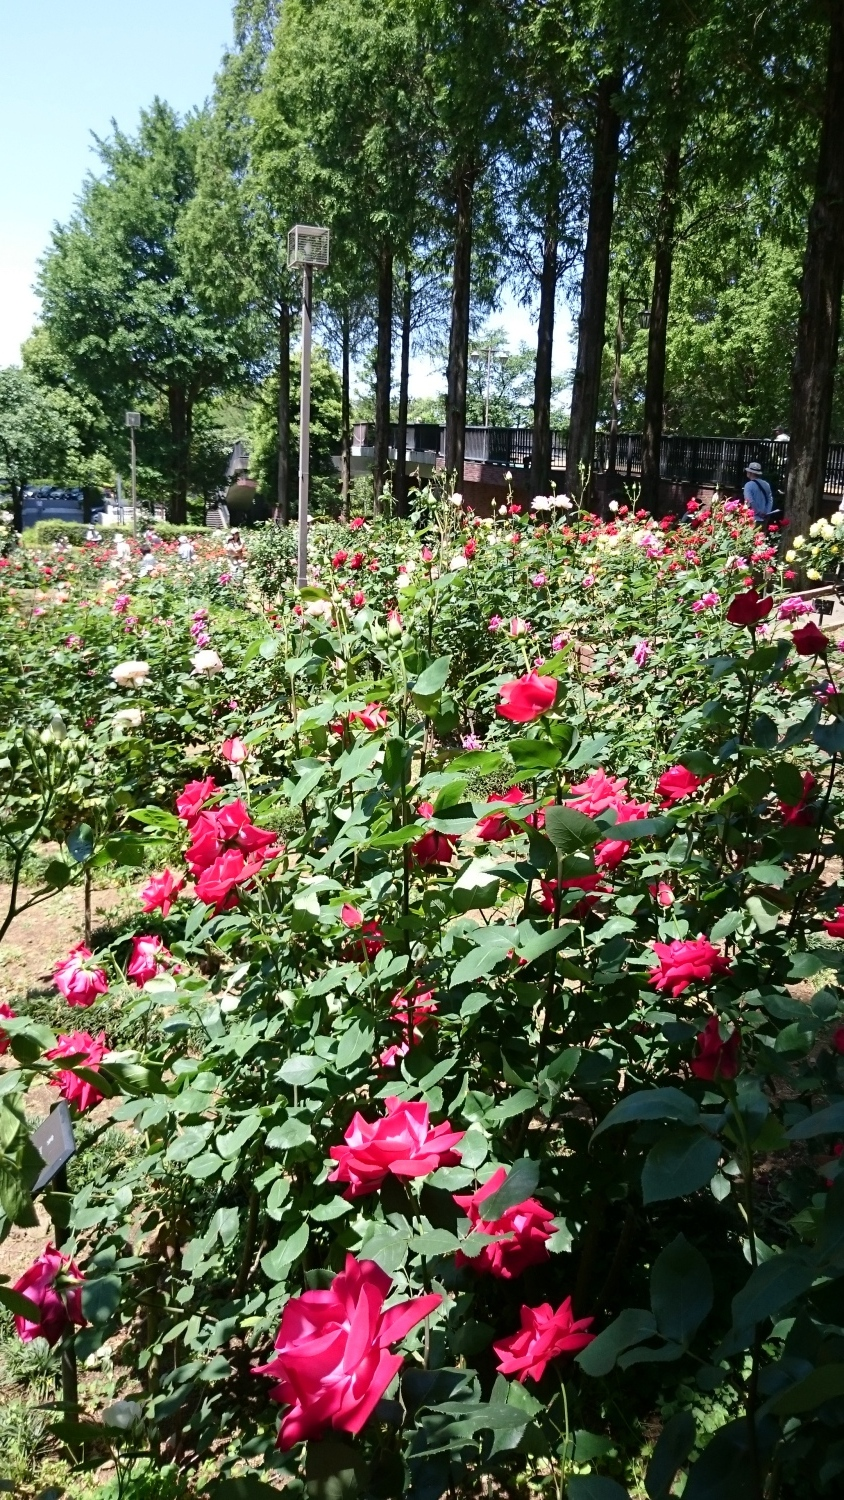 Many roses of rosary are in full bloom